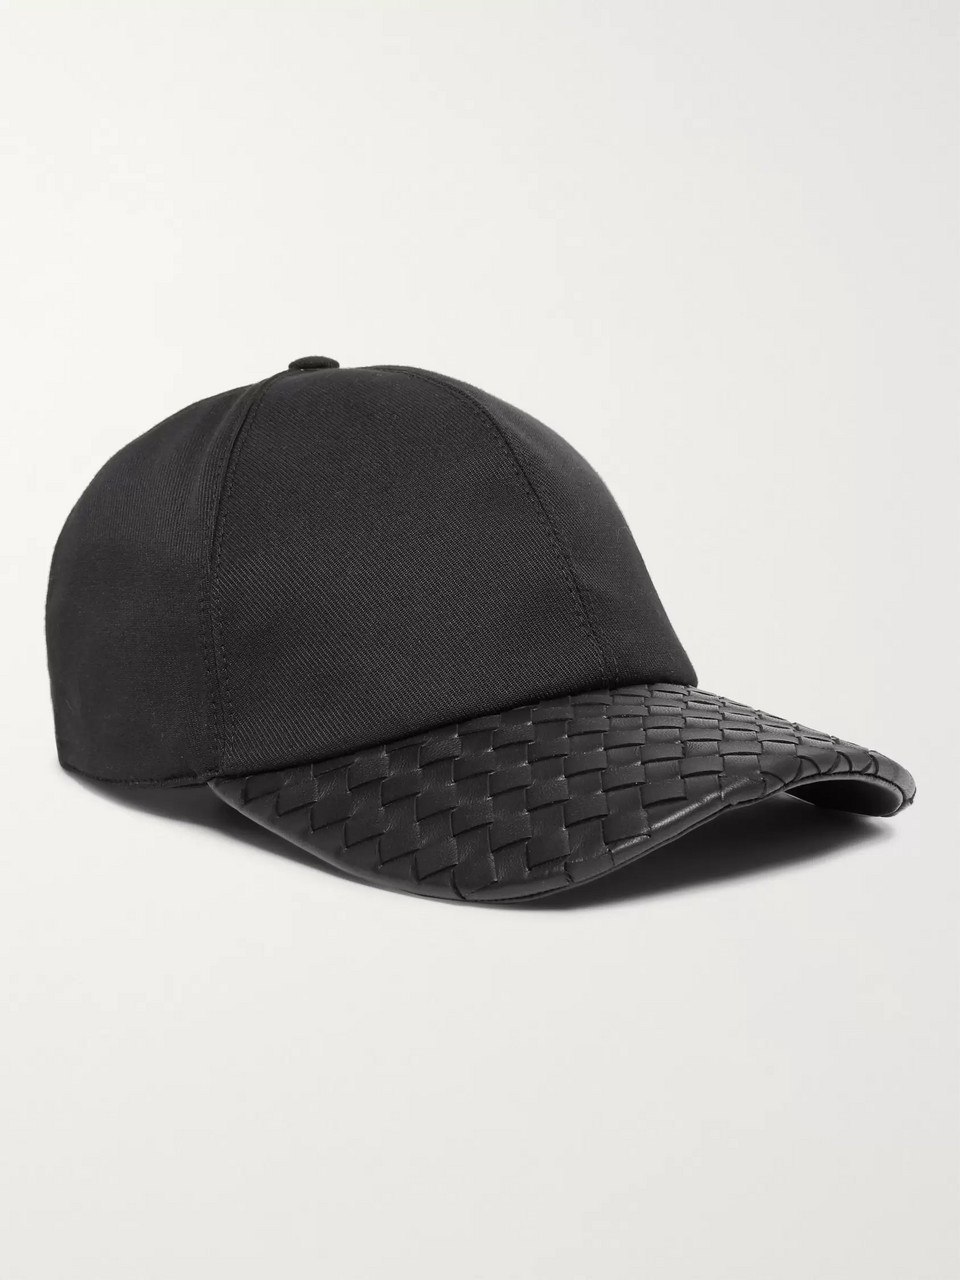 Bottega Veneta Cotton-Blend Twill and Intrecciato Leather Baseball Cap